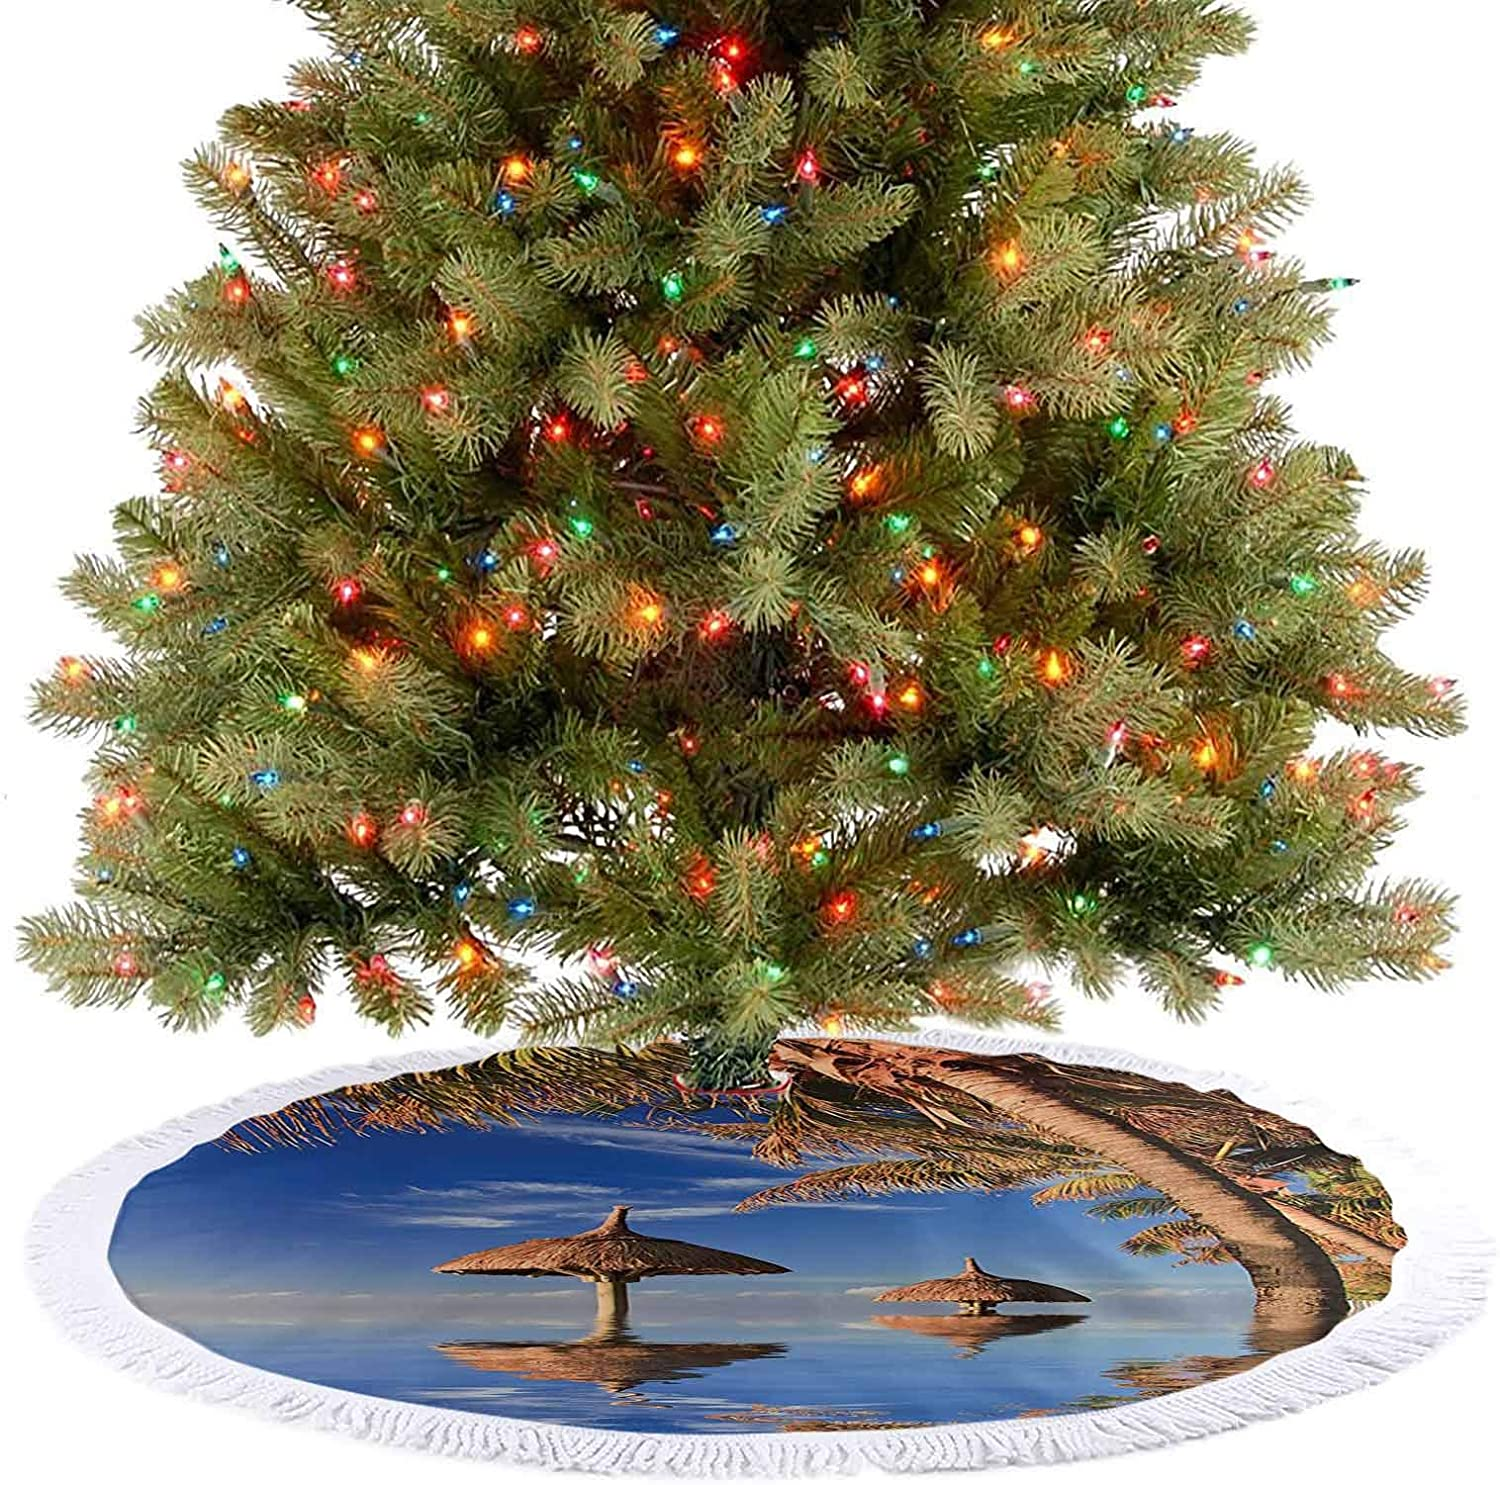 Adorise Christmas Tree Mat Tropic Palm Trees in Ocean Exotic Skyline Summer Paradise Mauritius Honeymoon Theme Blue Holiday Party Decoration Give Your Christmas Tree an Extra Touch - 36 Inch